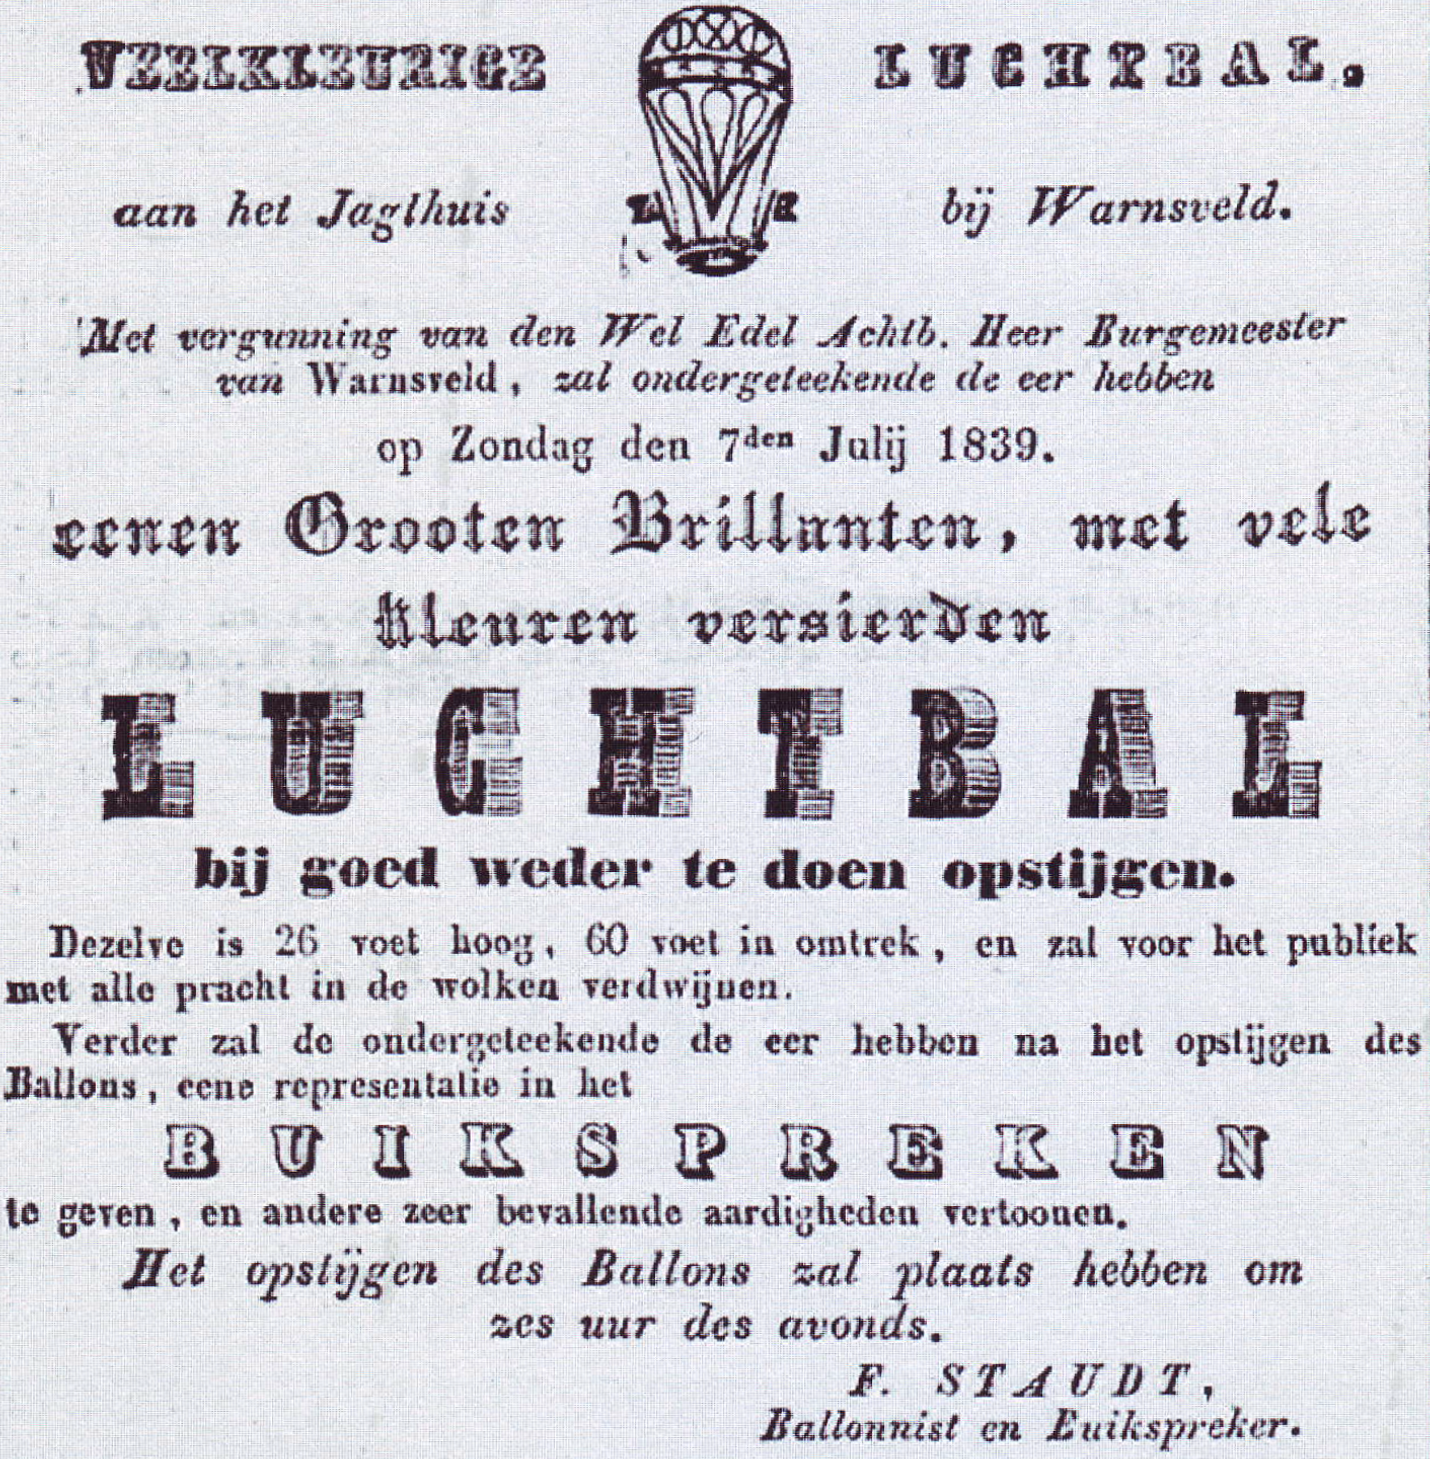 Advertentie Friedrich Staudt